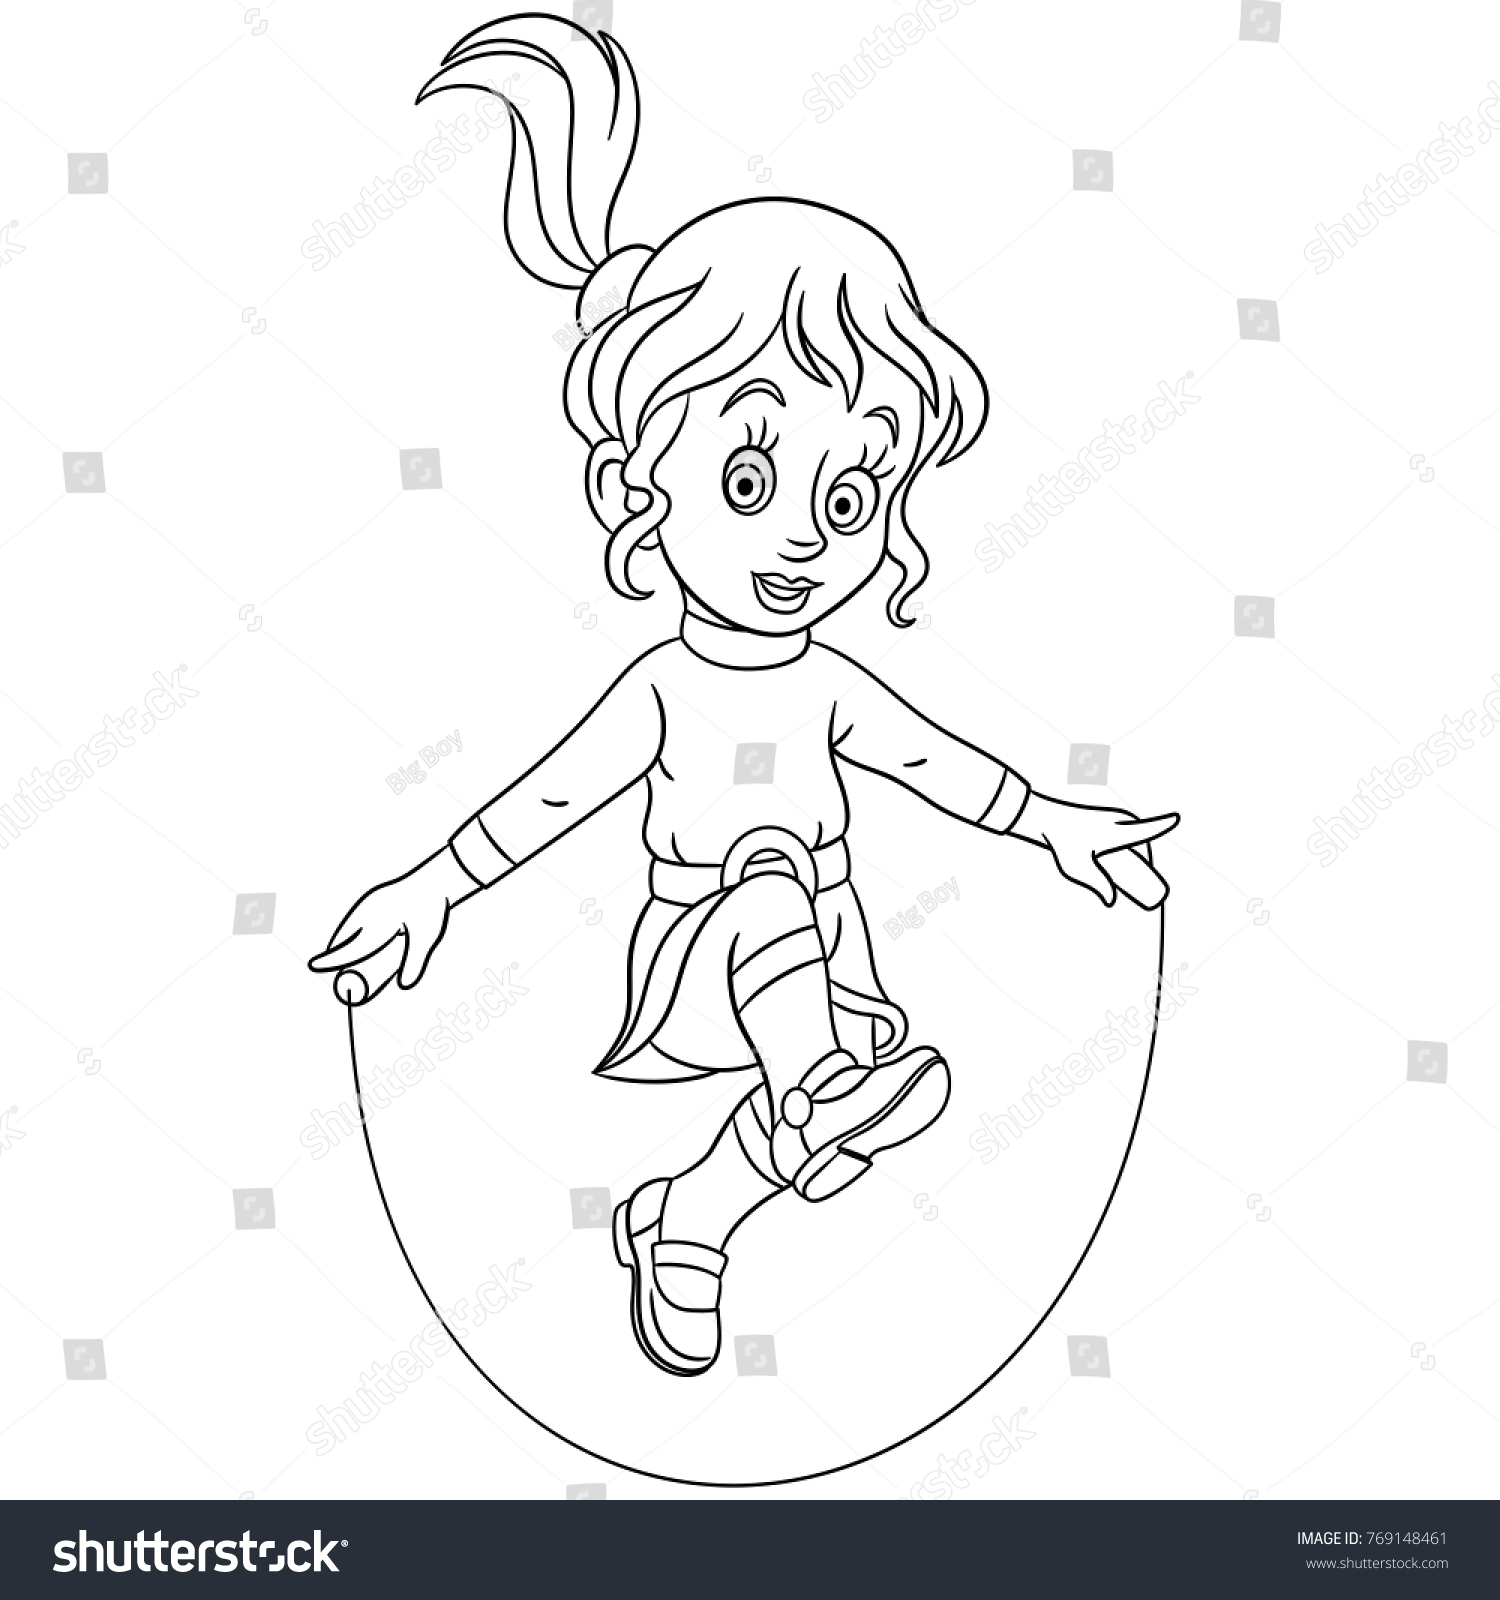 Coloring Pages Kids Design Childrens Colouring Stock Vector ...